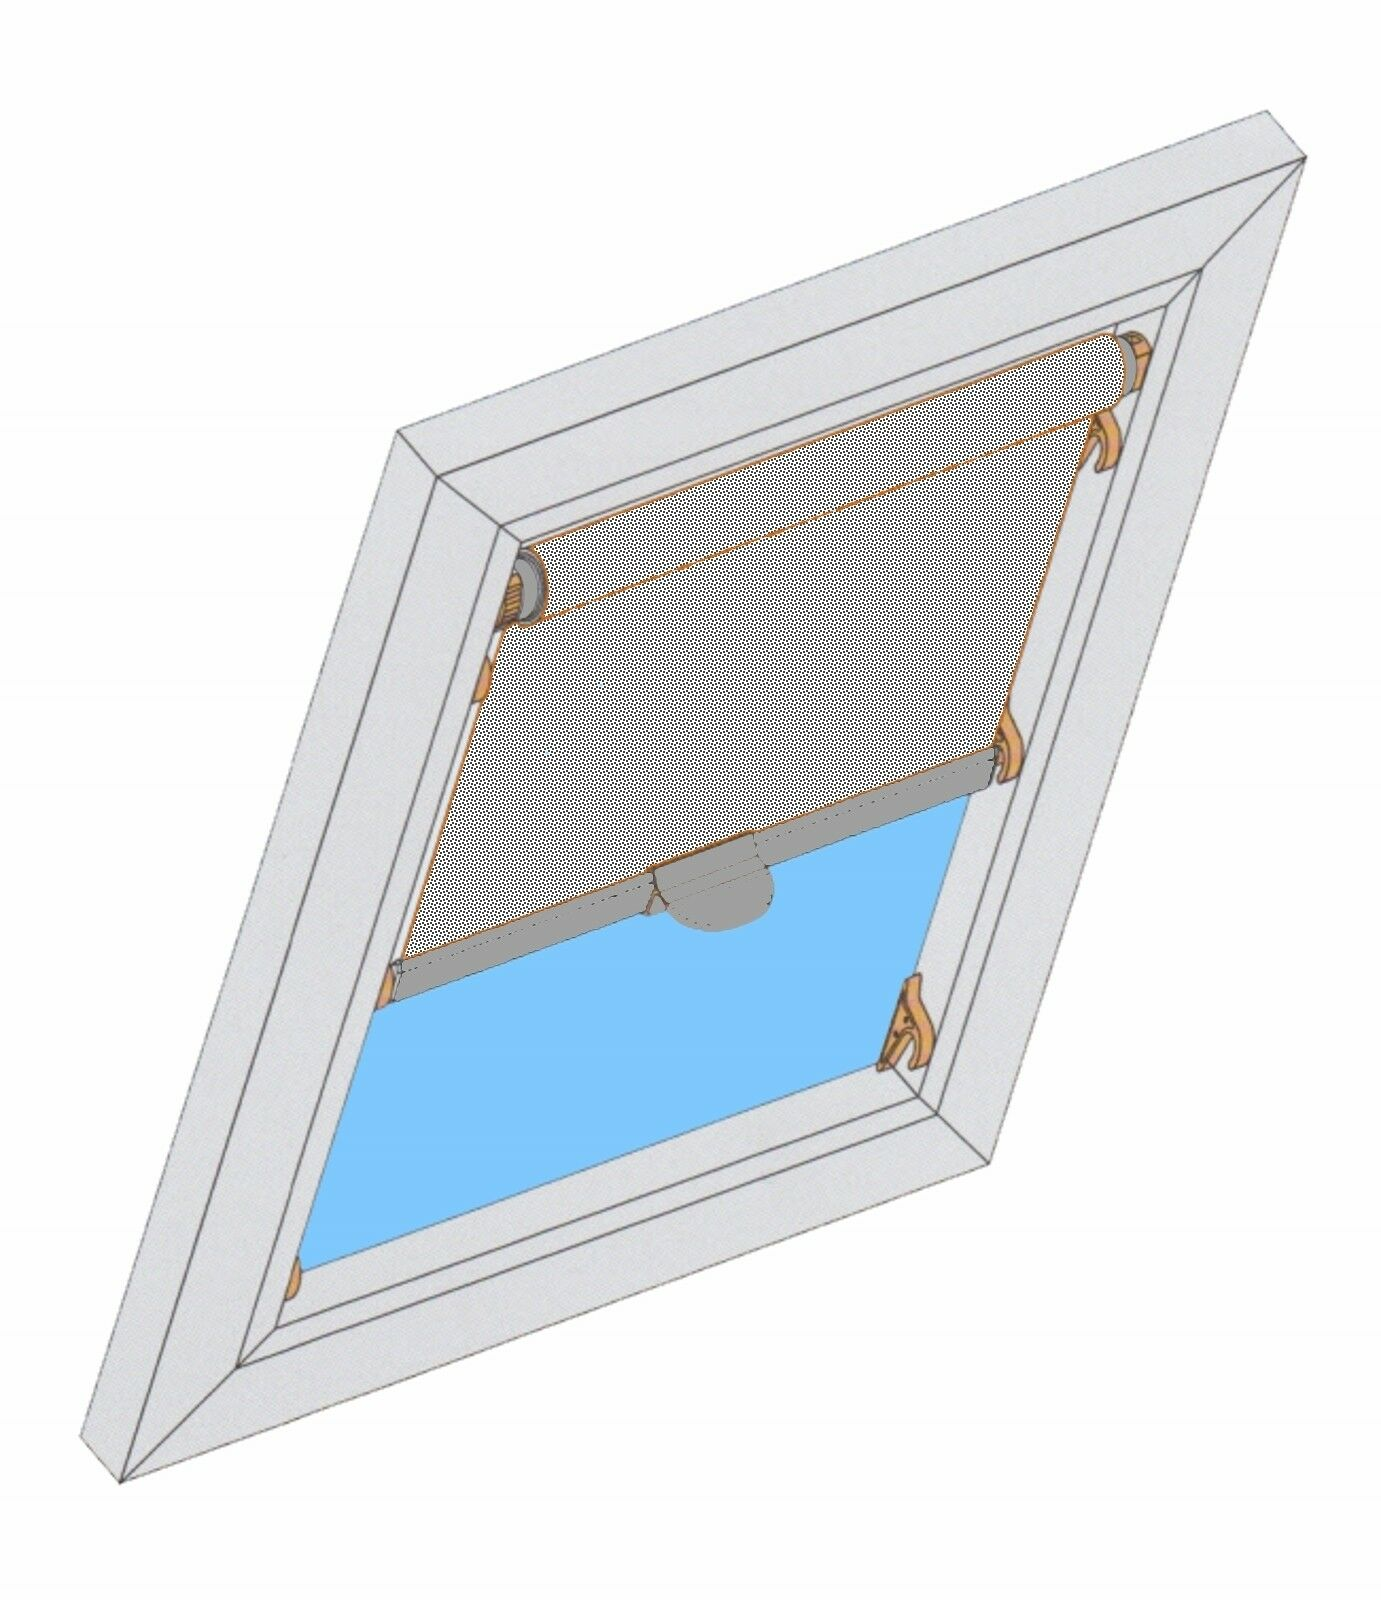 Gallery Of Rollo Fr Dachfenster Amazing With Fr Dachfenster With Optilight Dachfenster Rollo Cheap Affordable Fr Dachfenster Die